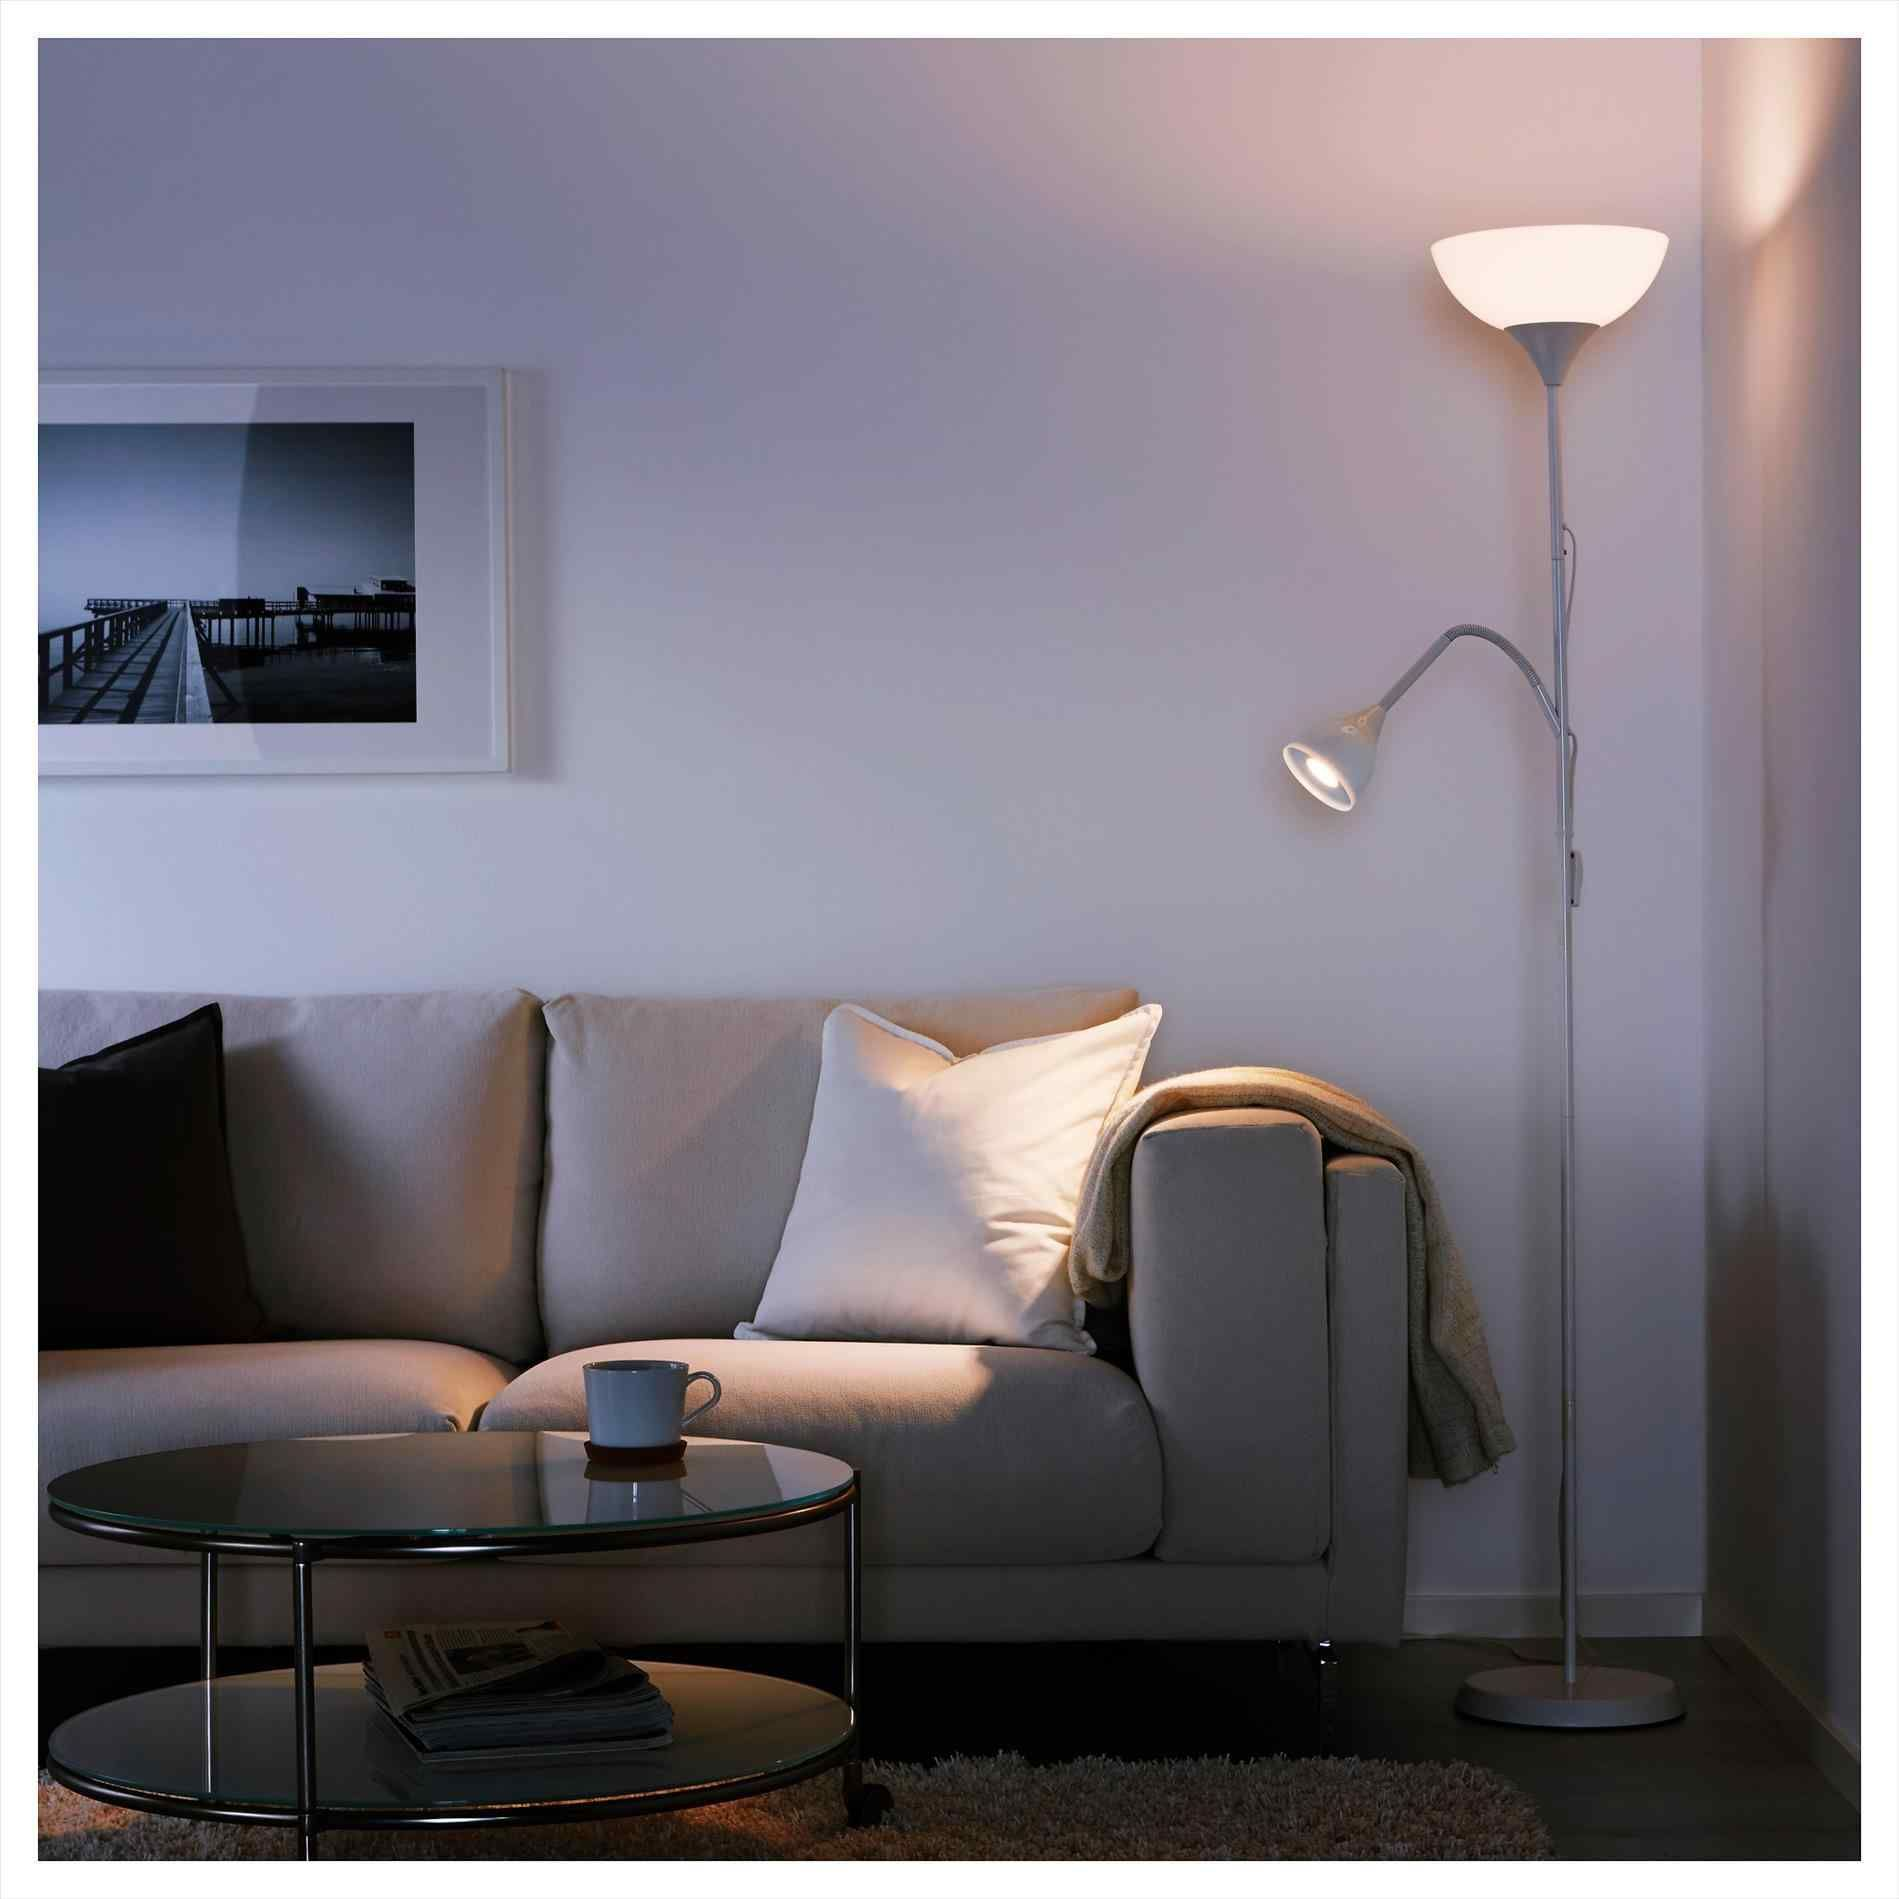 2 x Genuine Ikea HOLMO Floor L& Soft Smooth Relaxing Living Room // Bedroom Standing Light & 2 x Genuine Ikea HOLMO Floor Lamp Soft Smooth Relaxing Living Room ...